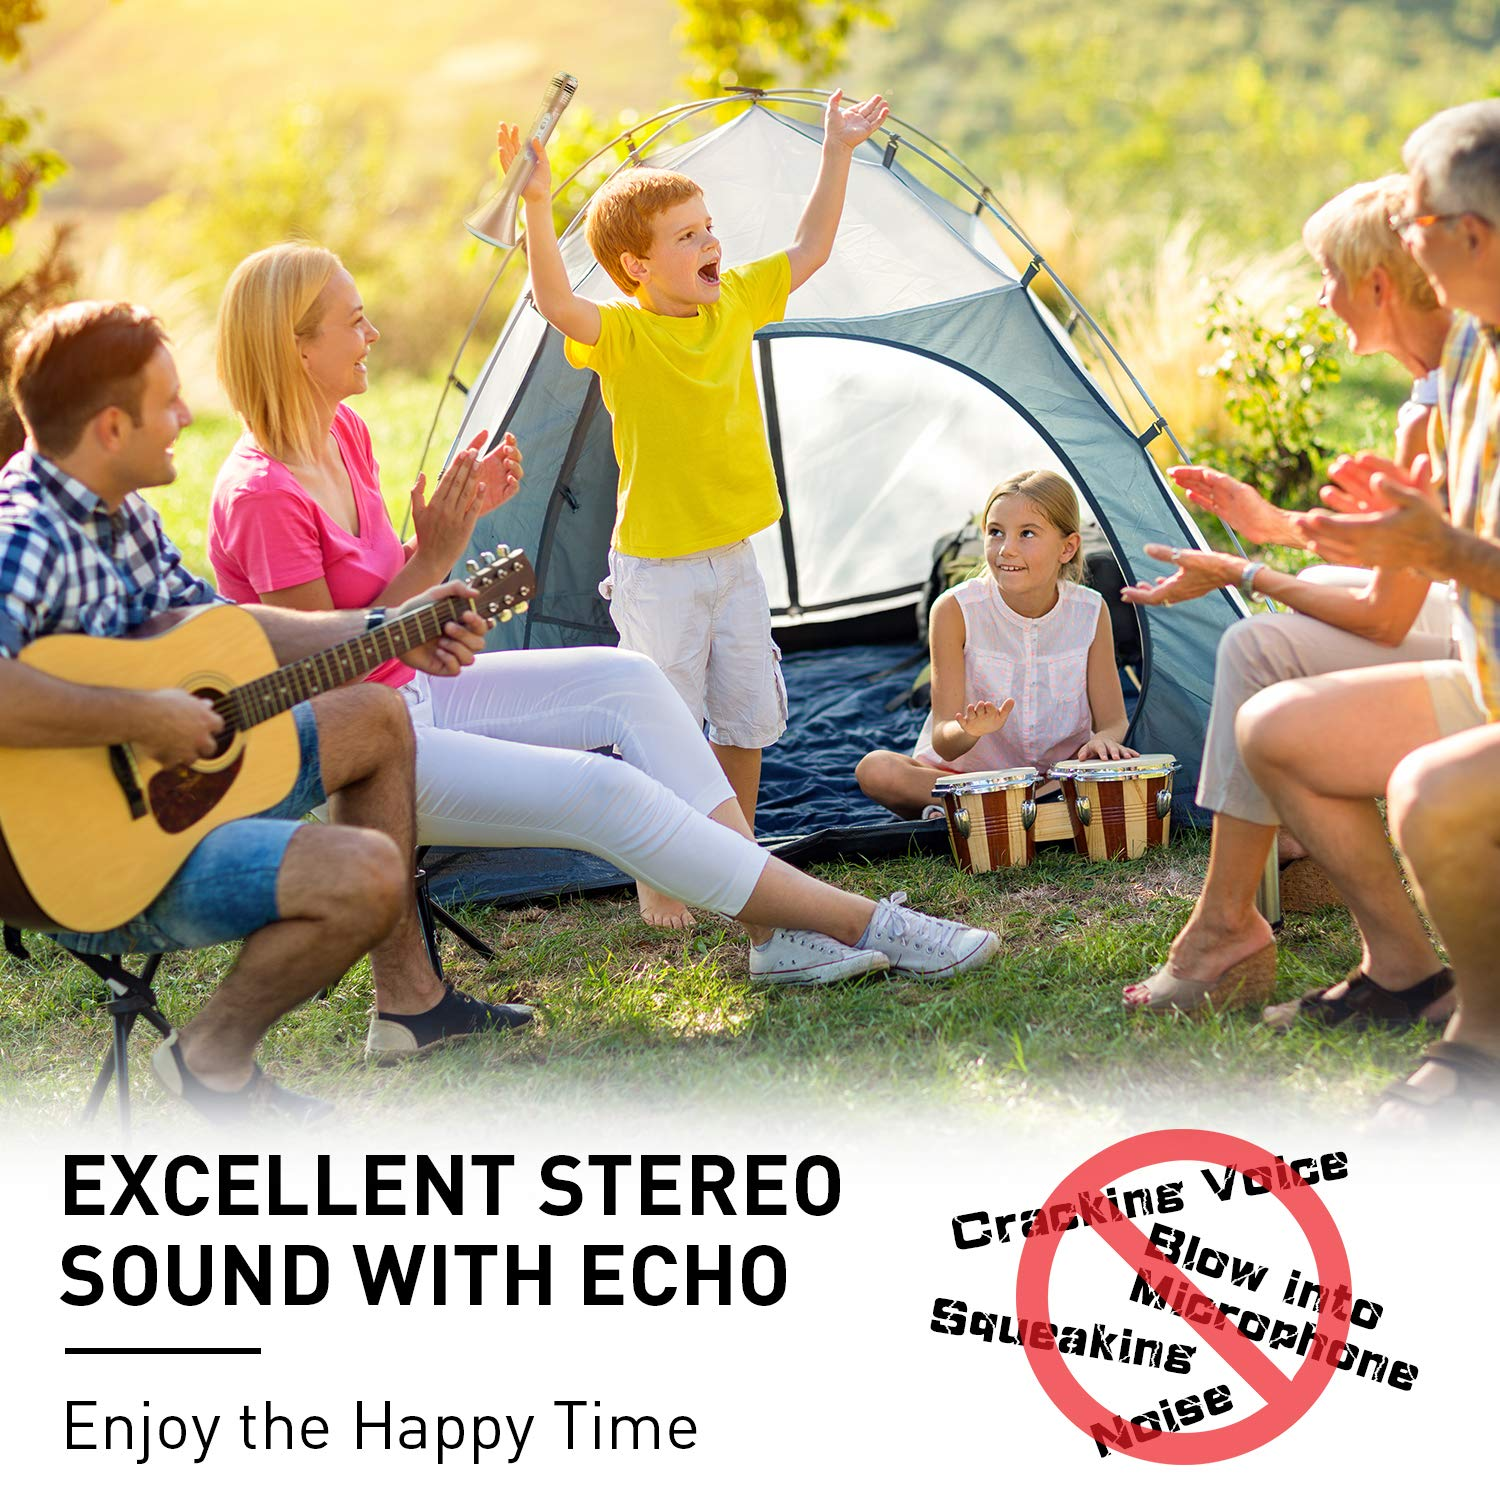 Microphone for Kids, Wireless Bluetooth Microphone with Bluetooth Speaker and Multi-color LED Lights Handheld Singing Machine Girls Boys Birthday Gift Compatible with PC/iPad/Smartphone - (Champagne) by WOSTOO (Image #5)